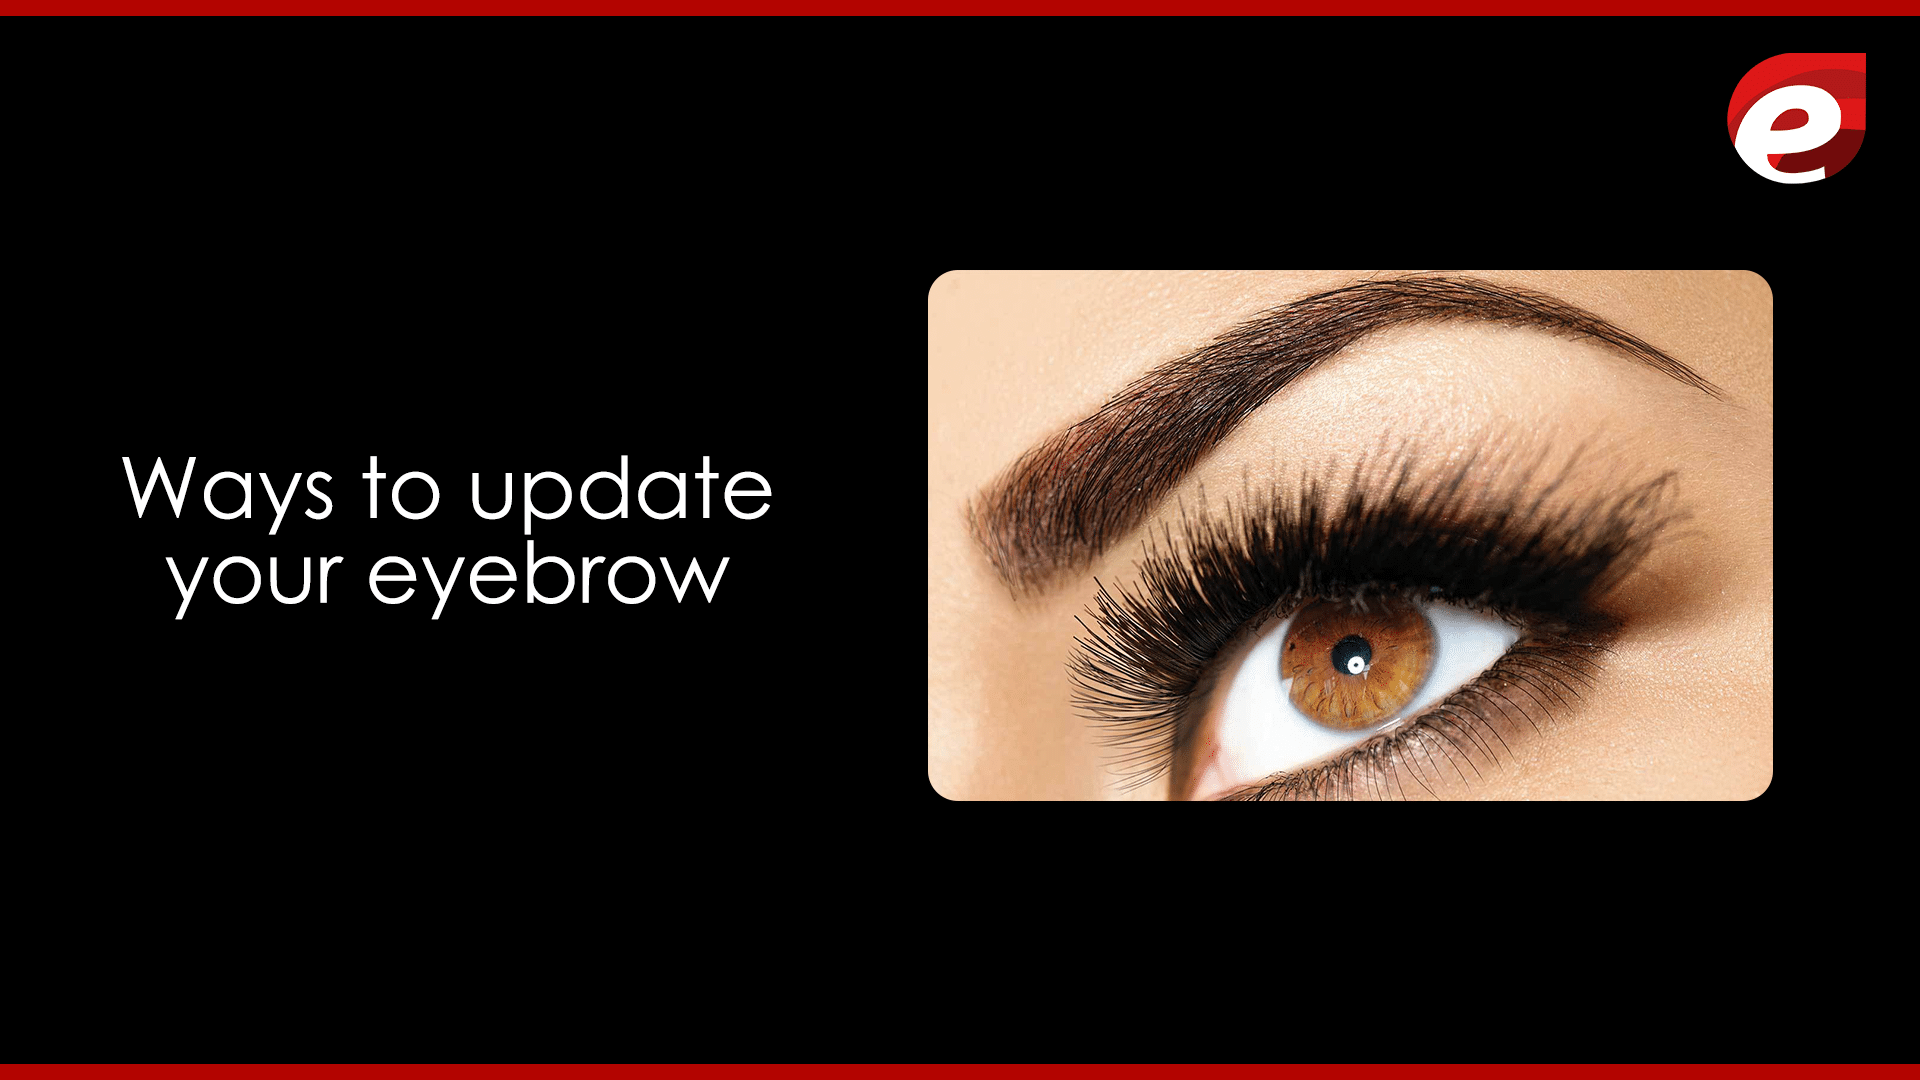 microblading- ways to update the eyebrows